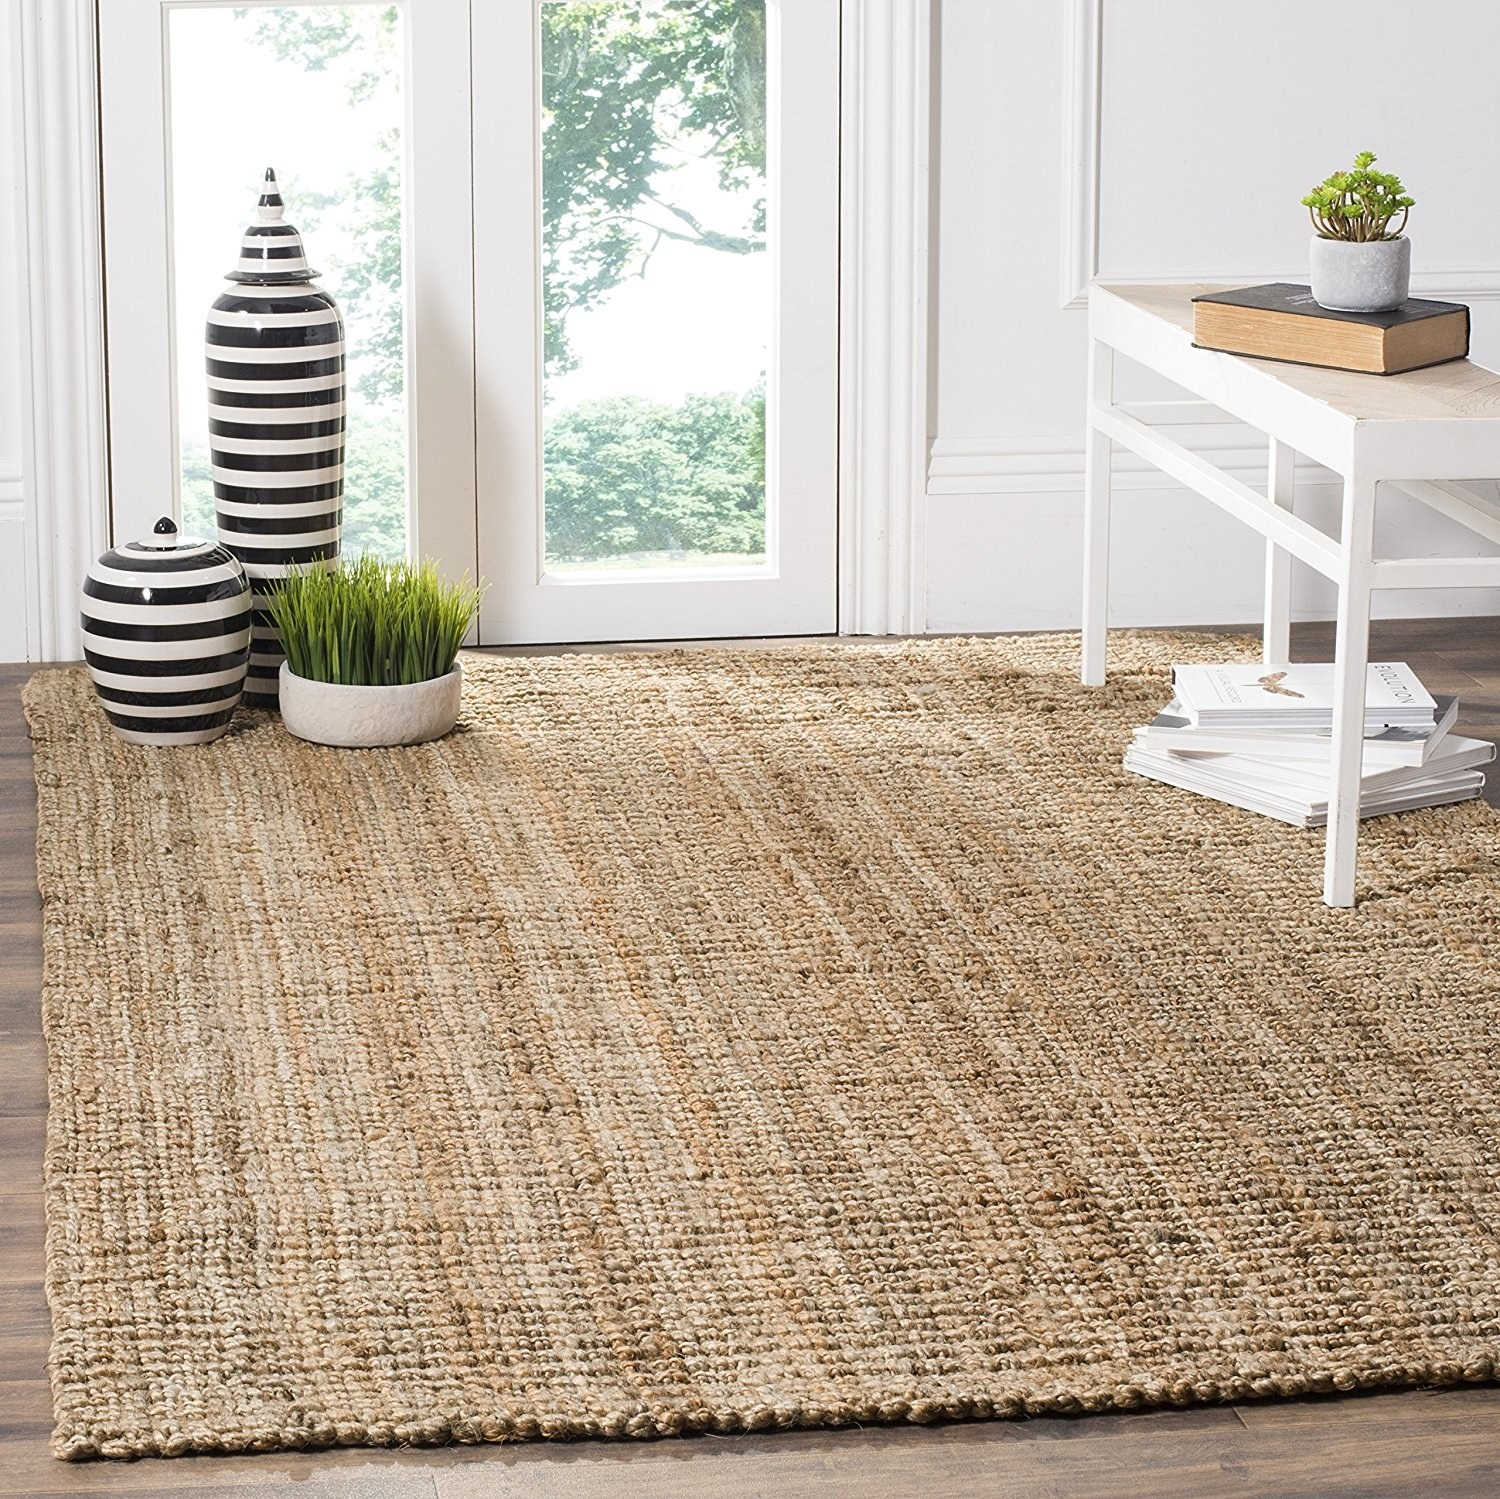 21 Of The Best Rugs You Can Get On Amazon